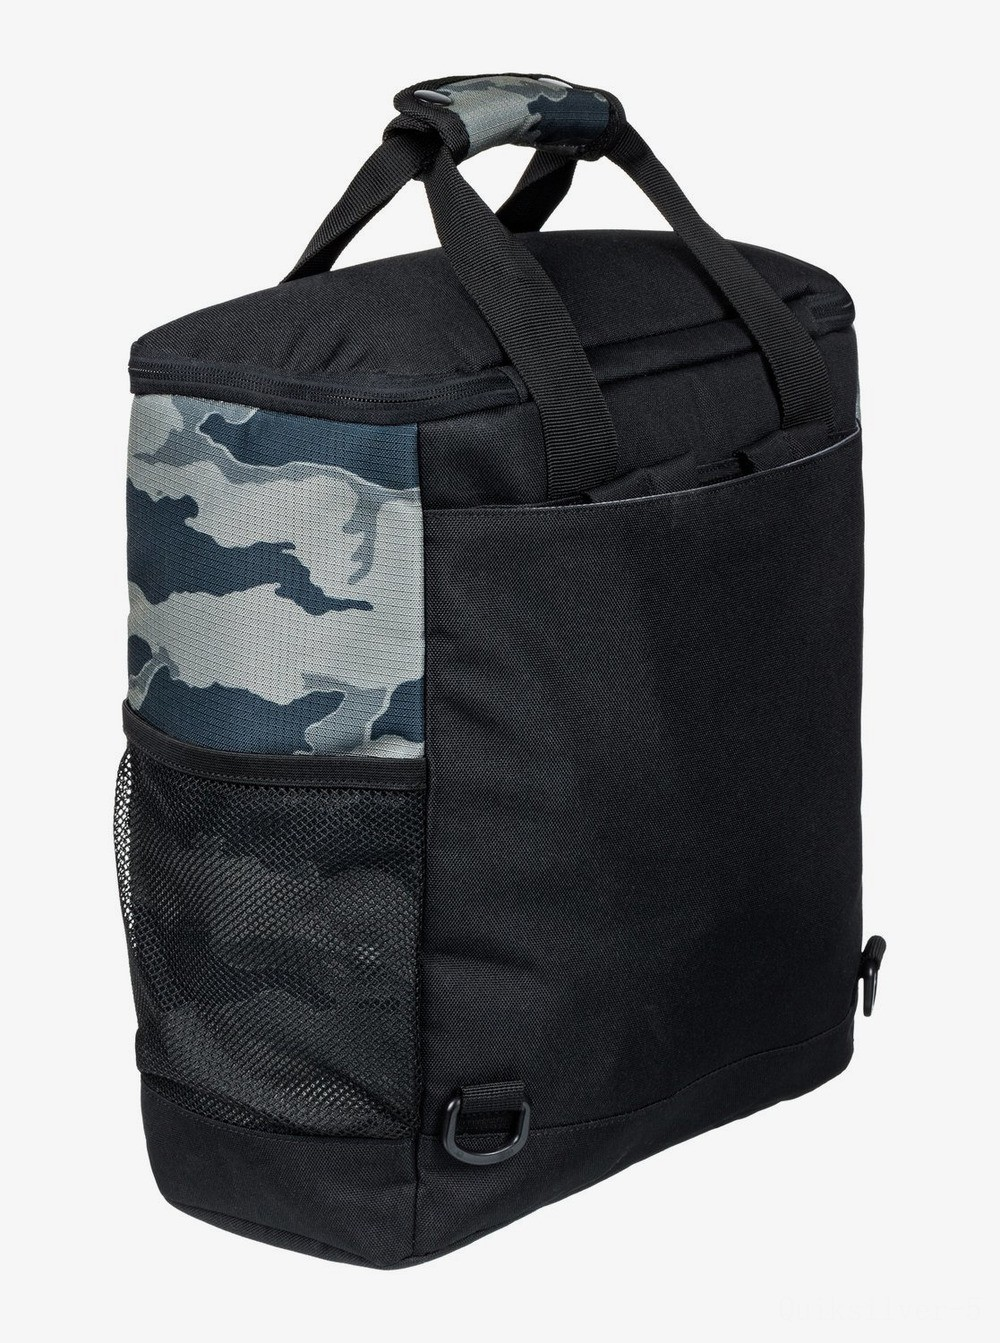 last chance seabeach 18l medium insulated cooler backpack - camo black best price limited sale